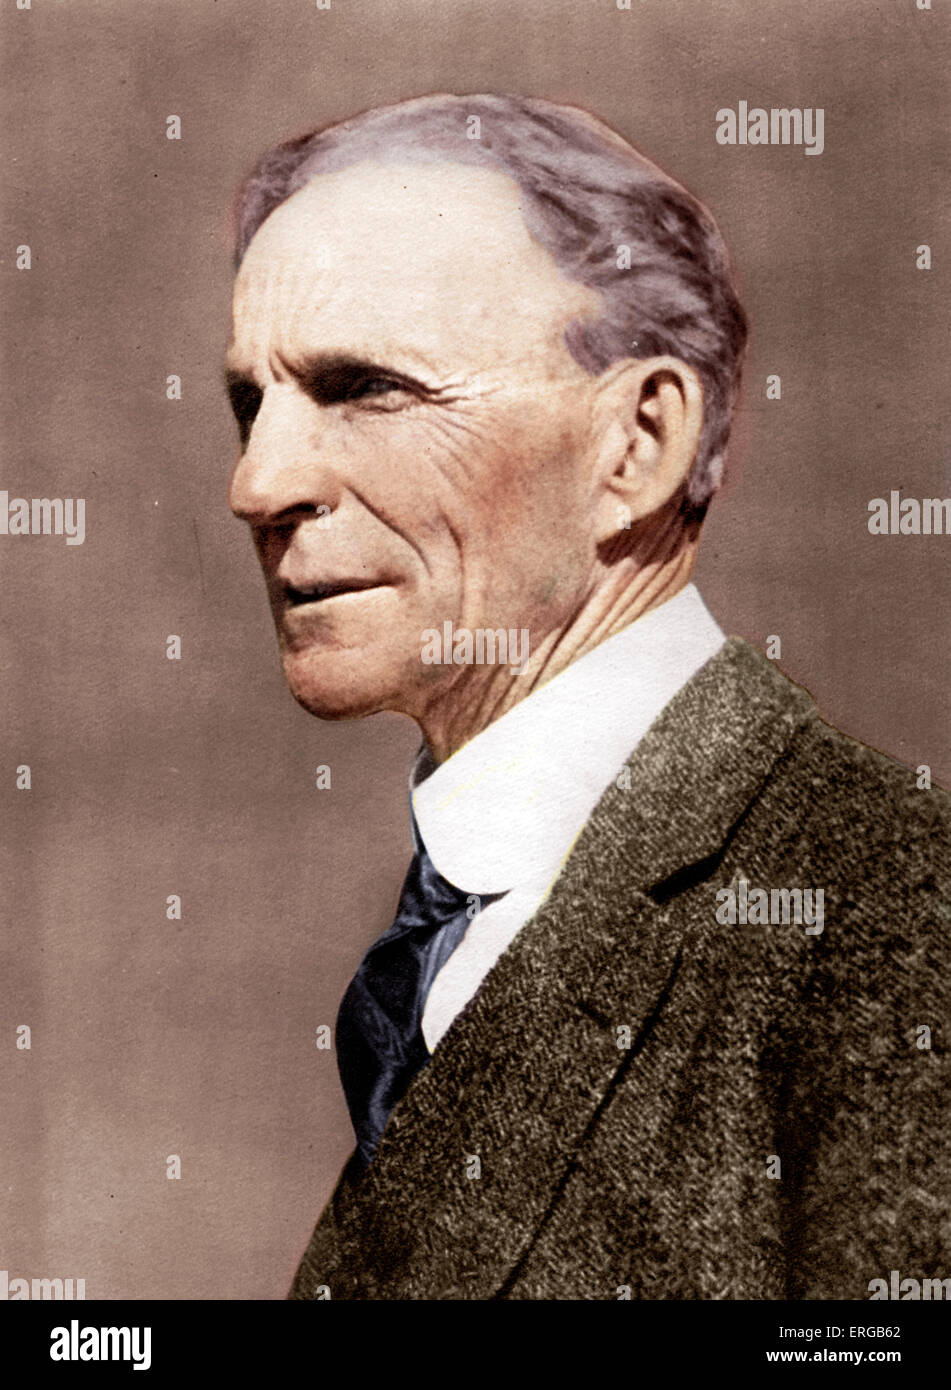 Henry Ford (30 July 1863 – 7 April 1947) - American industrialist, founder of Ford Motor Company, who sponsored - Stock Image